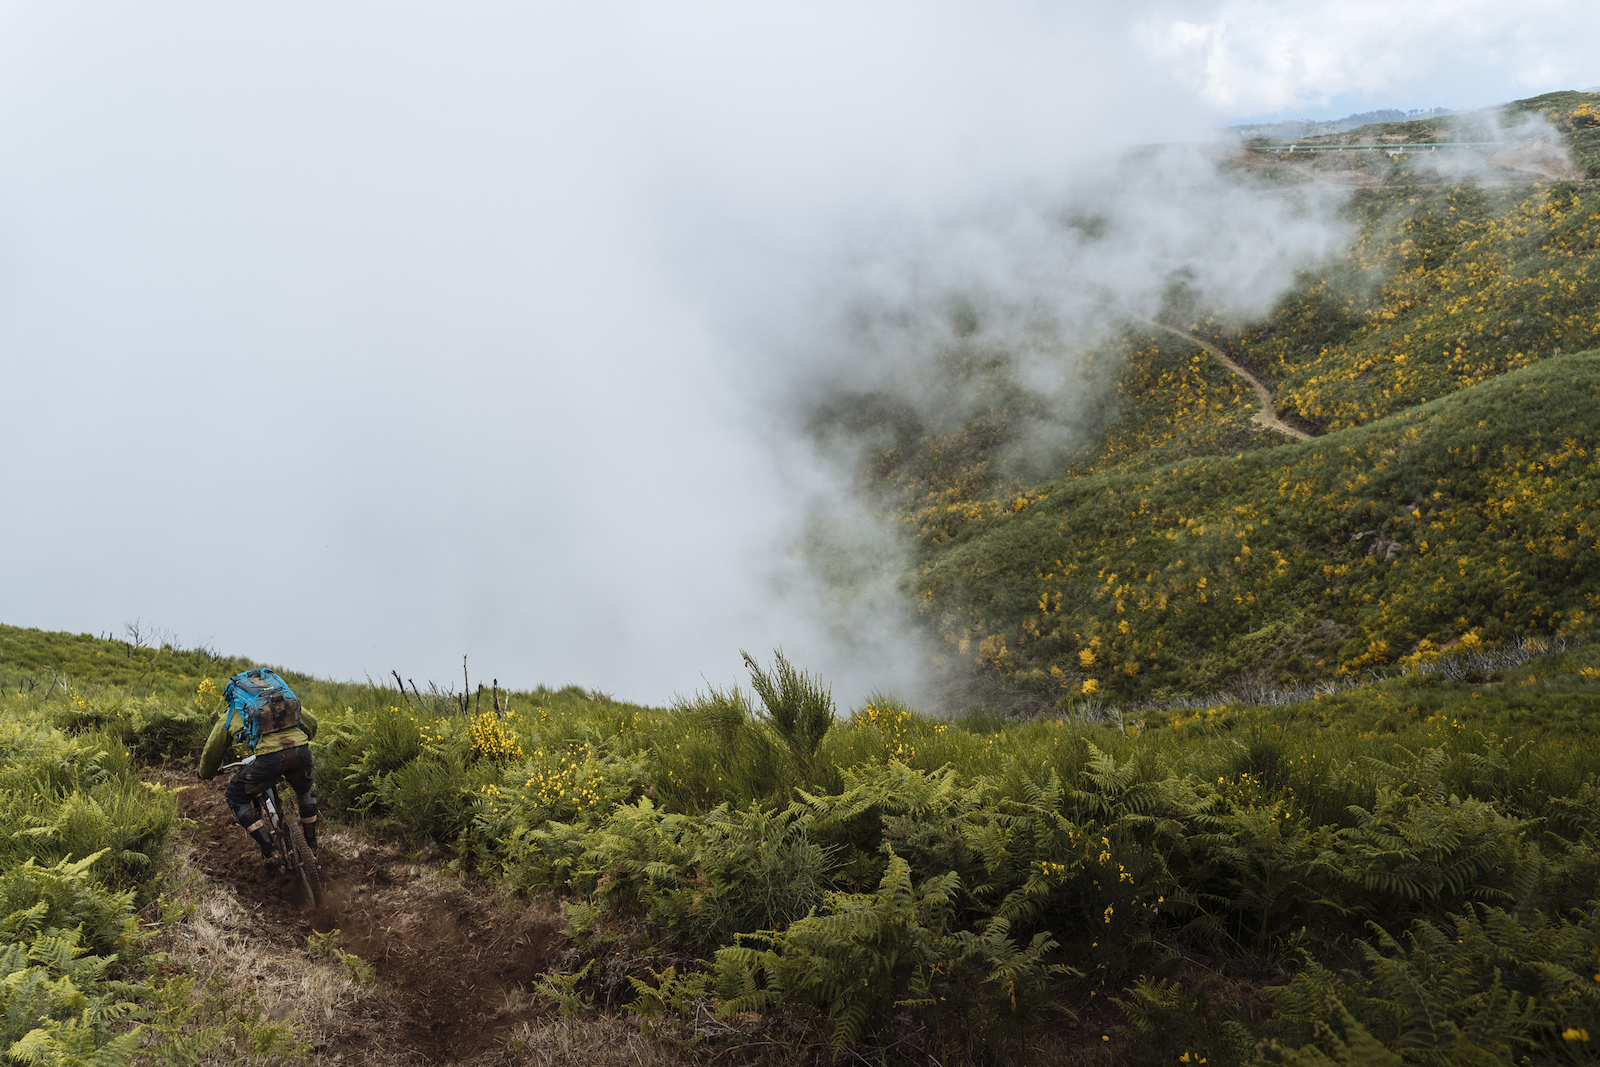 The cloud was rising as the riders arrived on stage 4. It wasn t long before visibility was limited.